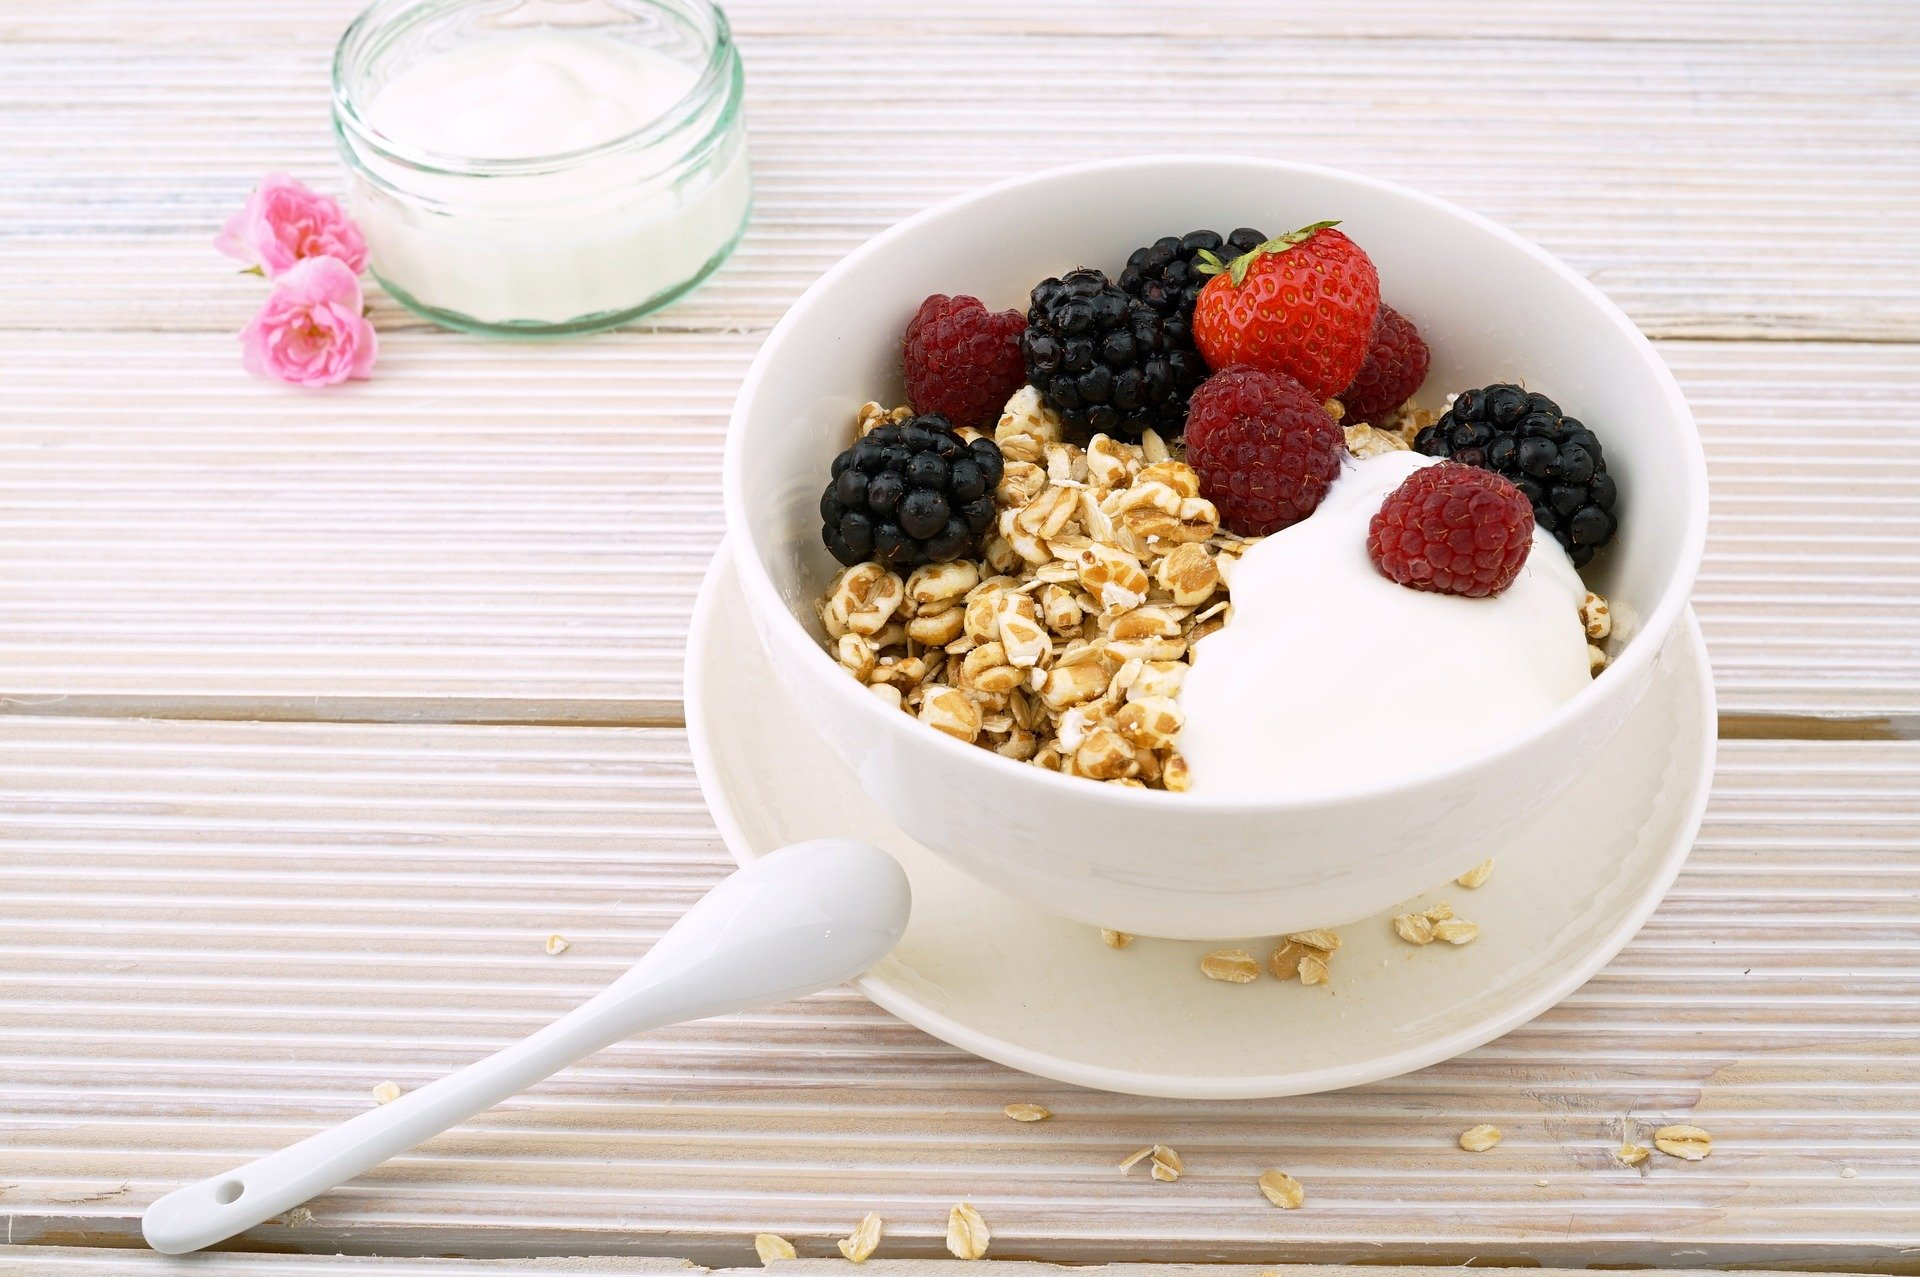 bowl of oats with yoghurt (to display a typical breakfast for those with coeliac disease)